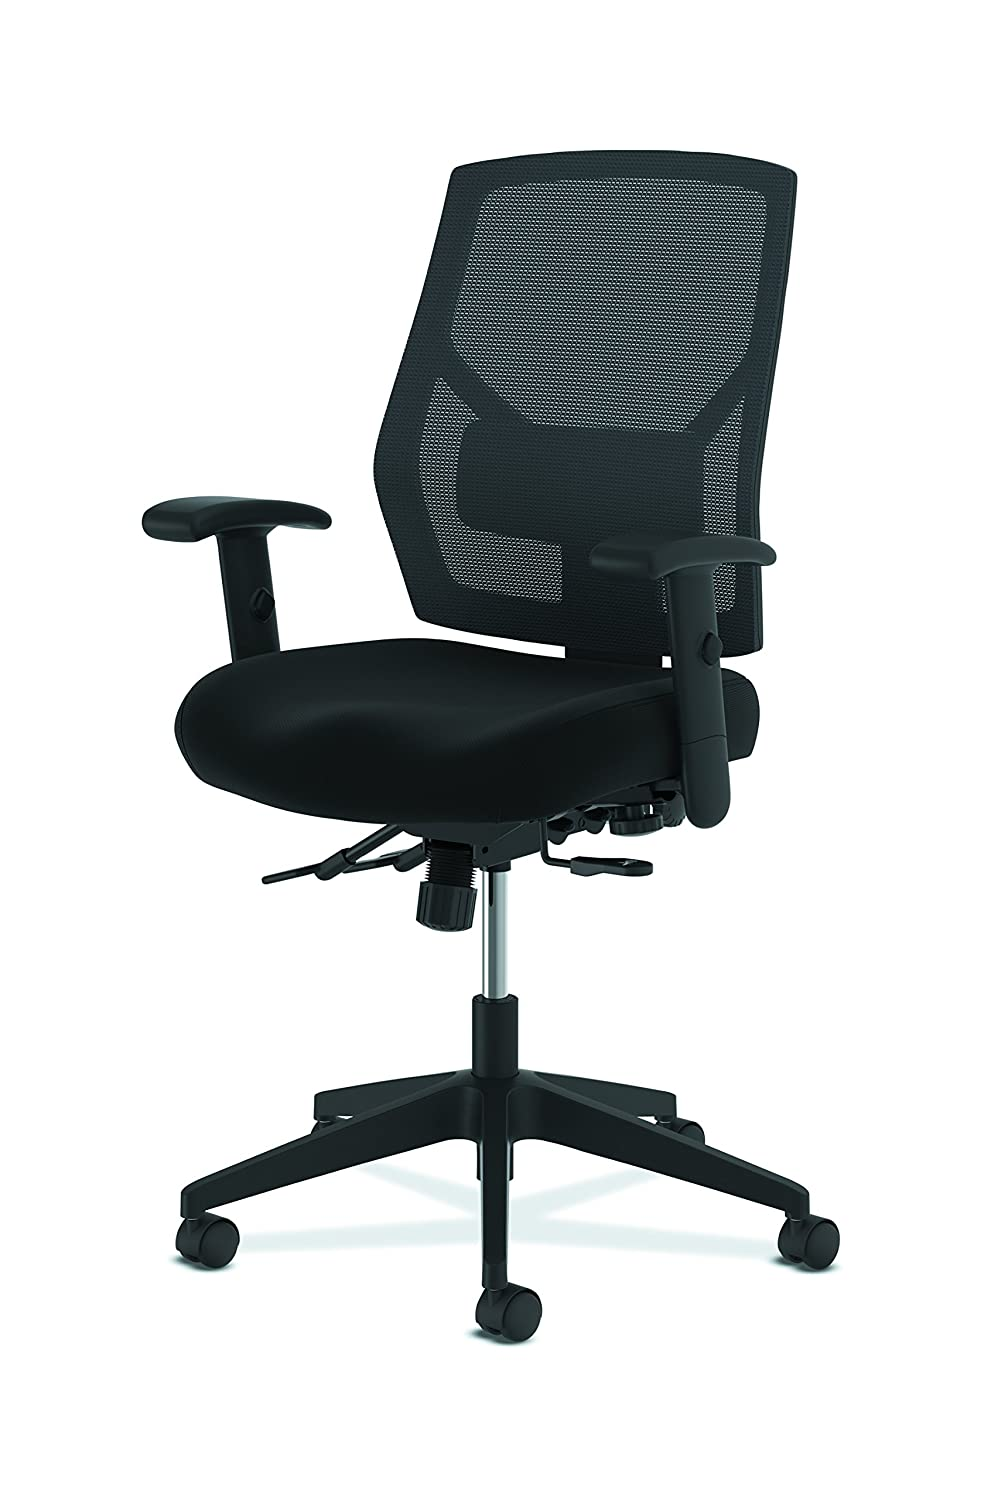 Leather Mesh Back Computer Chair with Asynchronous Control for Office Desk HON Crio High-Back Task Chair HVL582 Black